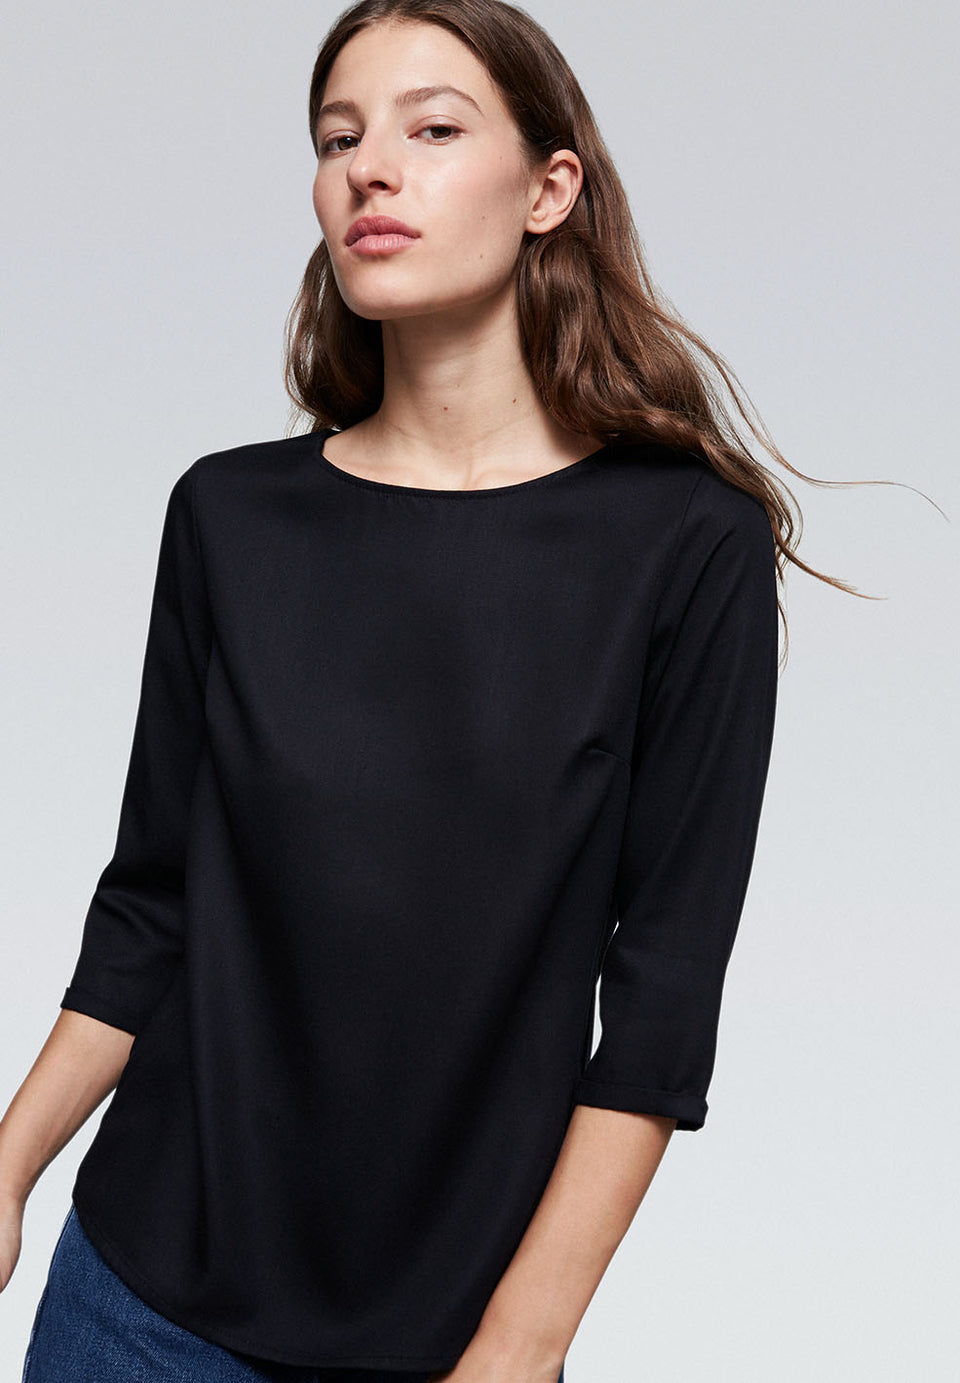 Heddaa Bow Blouse in Black